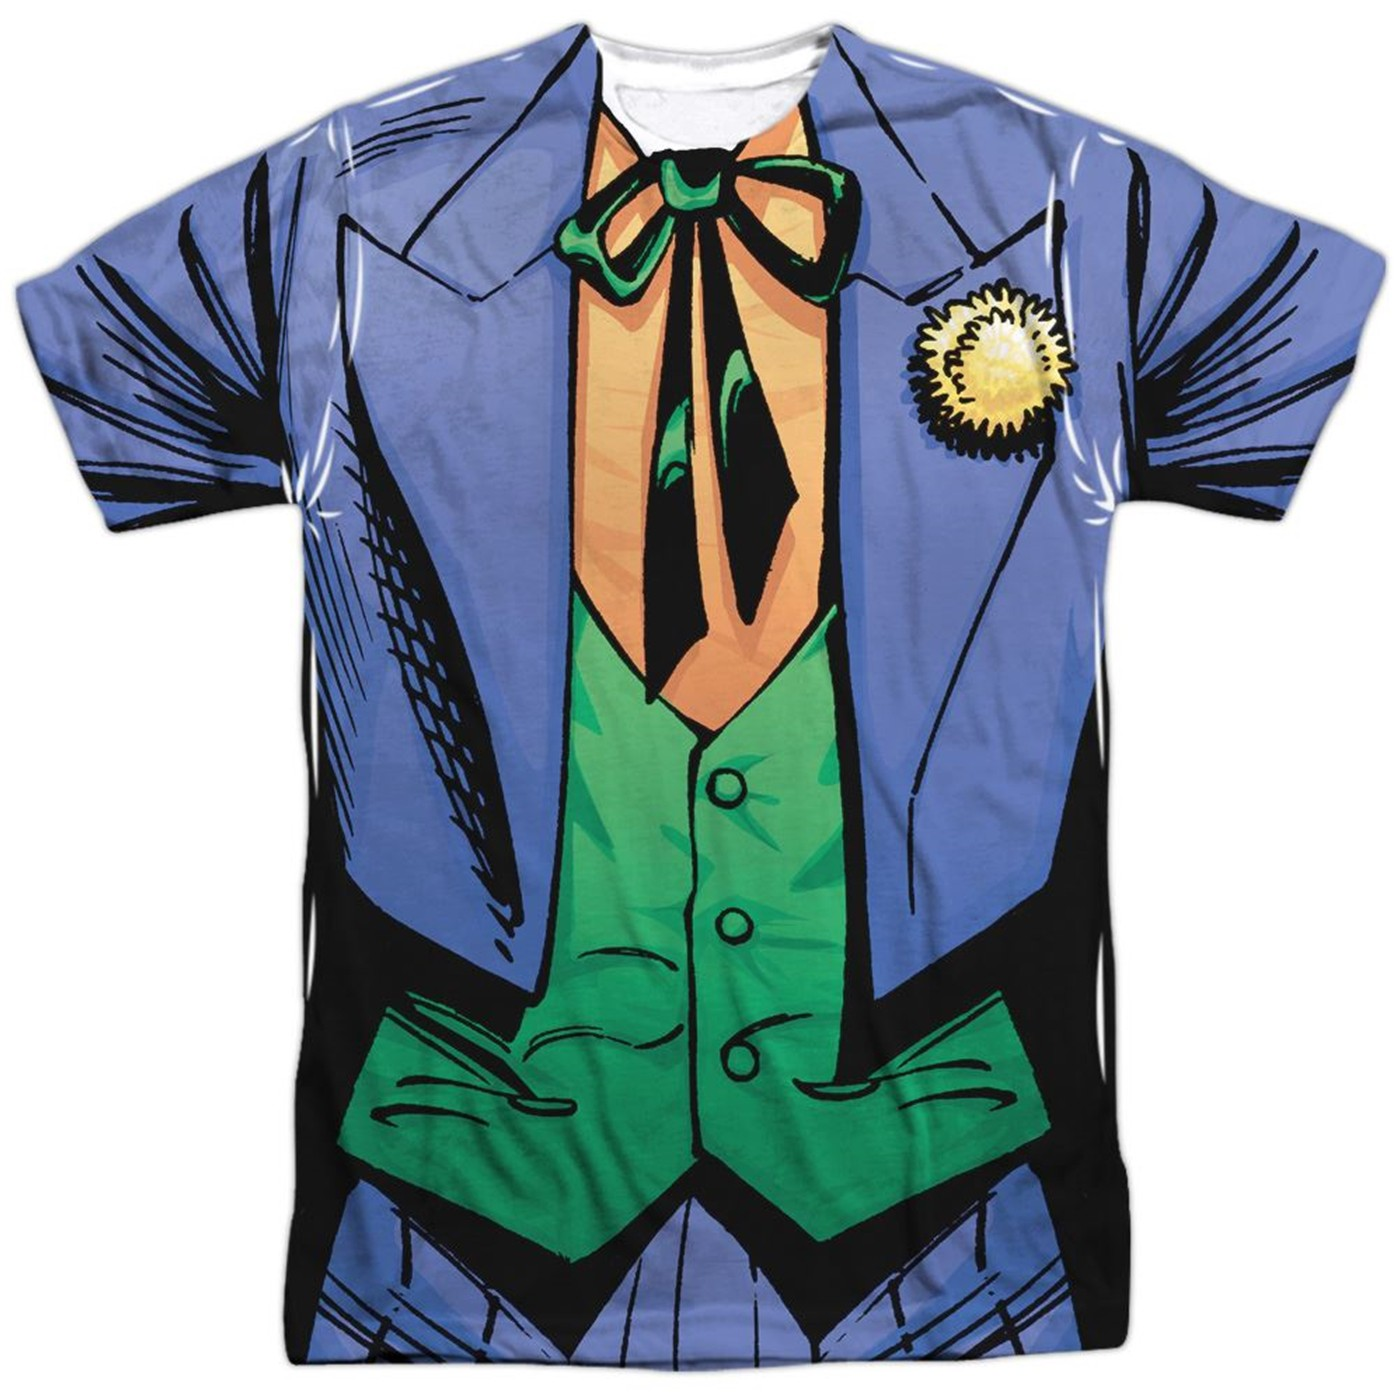 Joker Uniform Sublimated Costume Men's T-Shirt